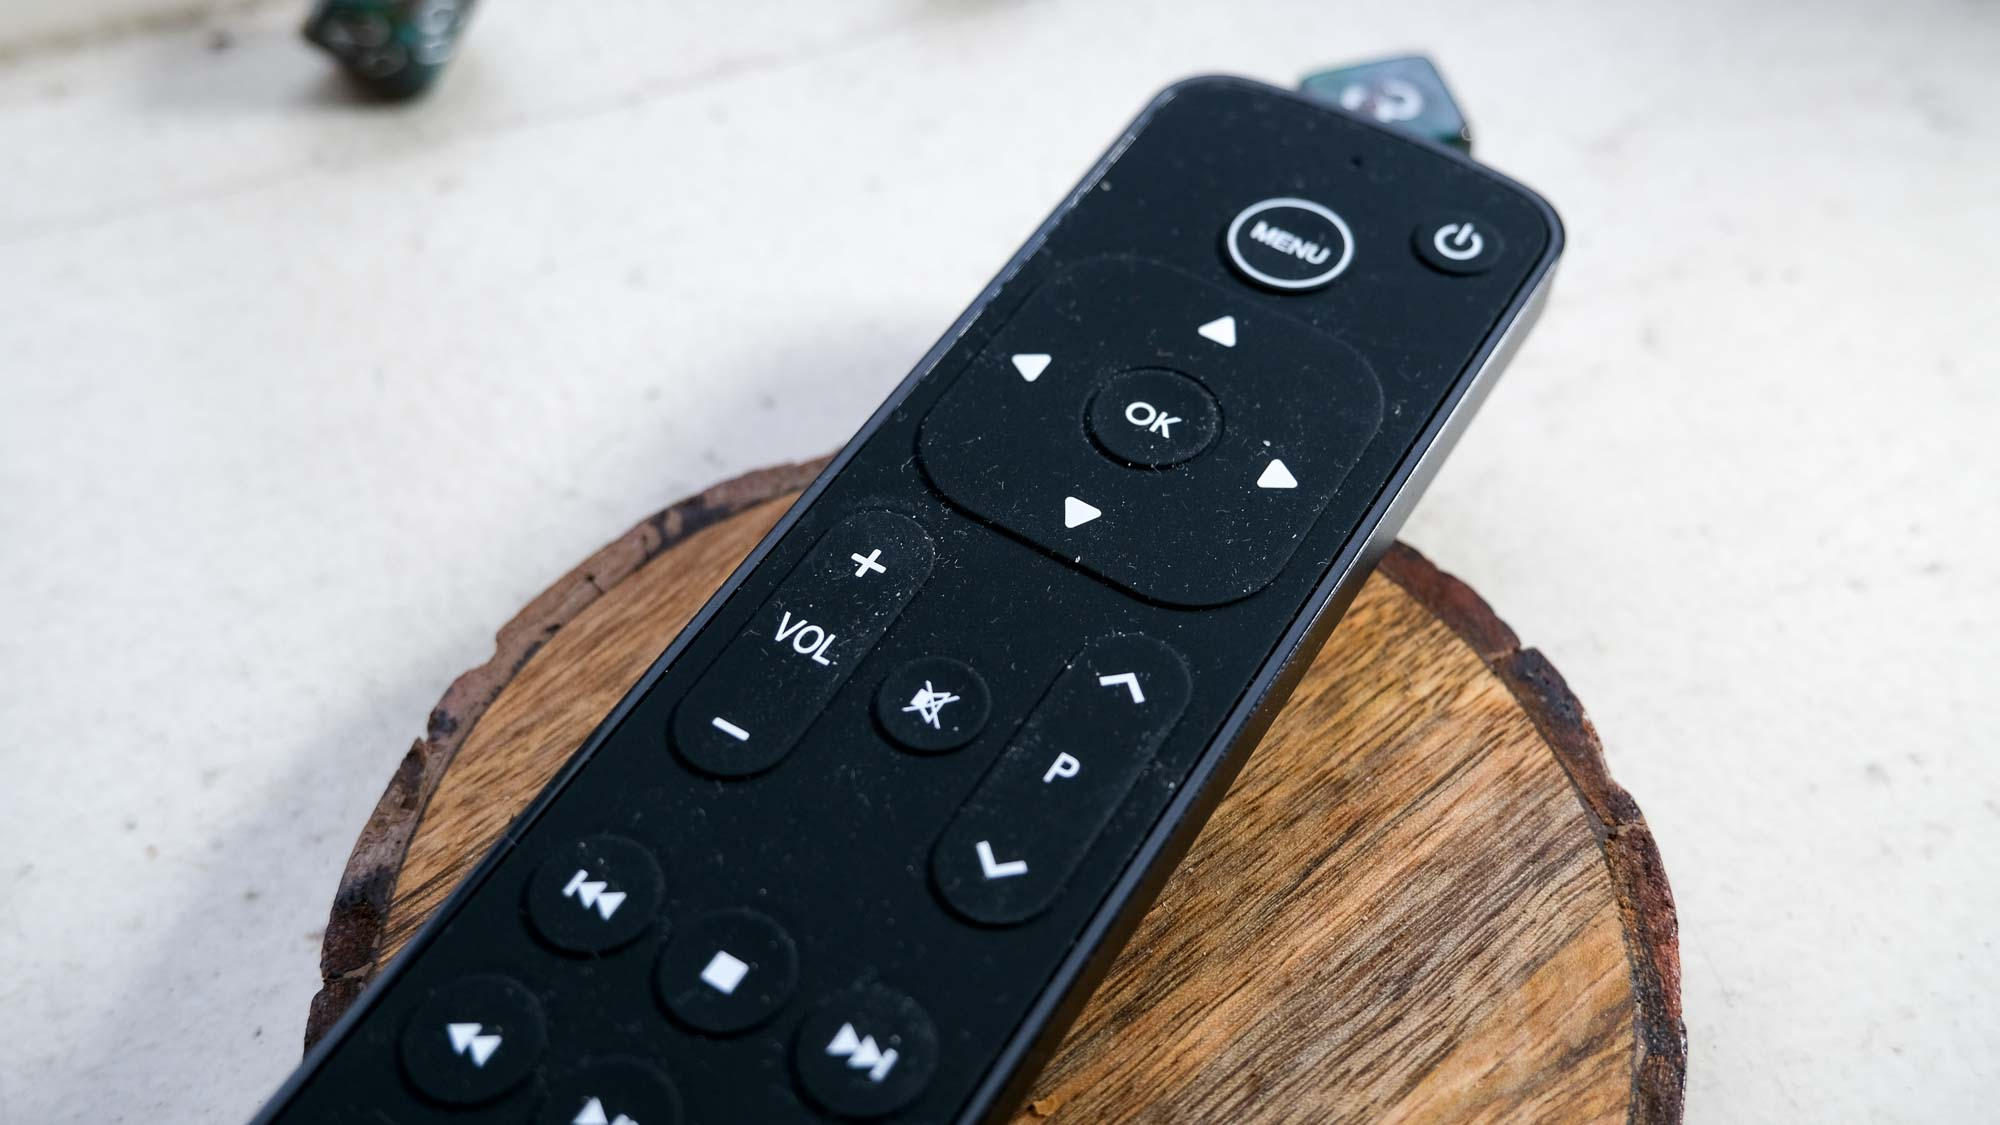 Apple TV 2021 should copy the Function101 Apple TV remote